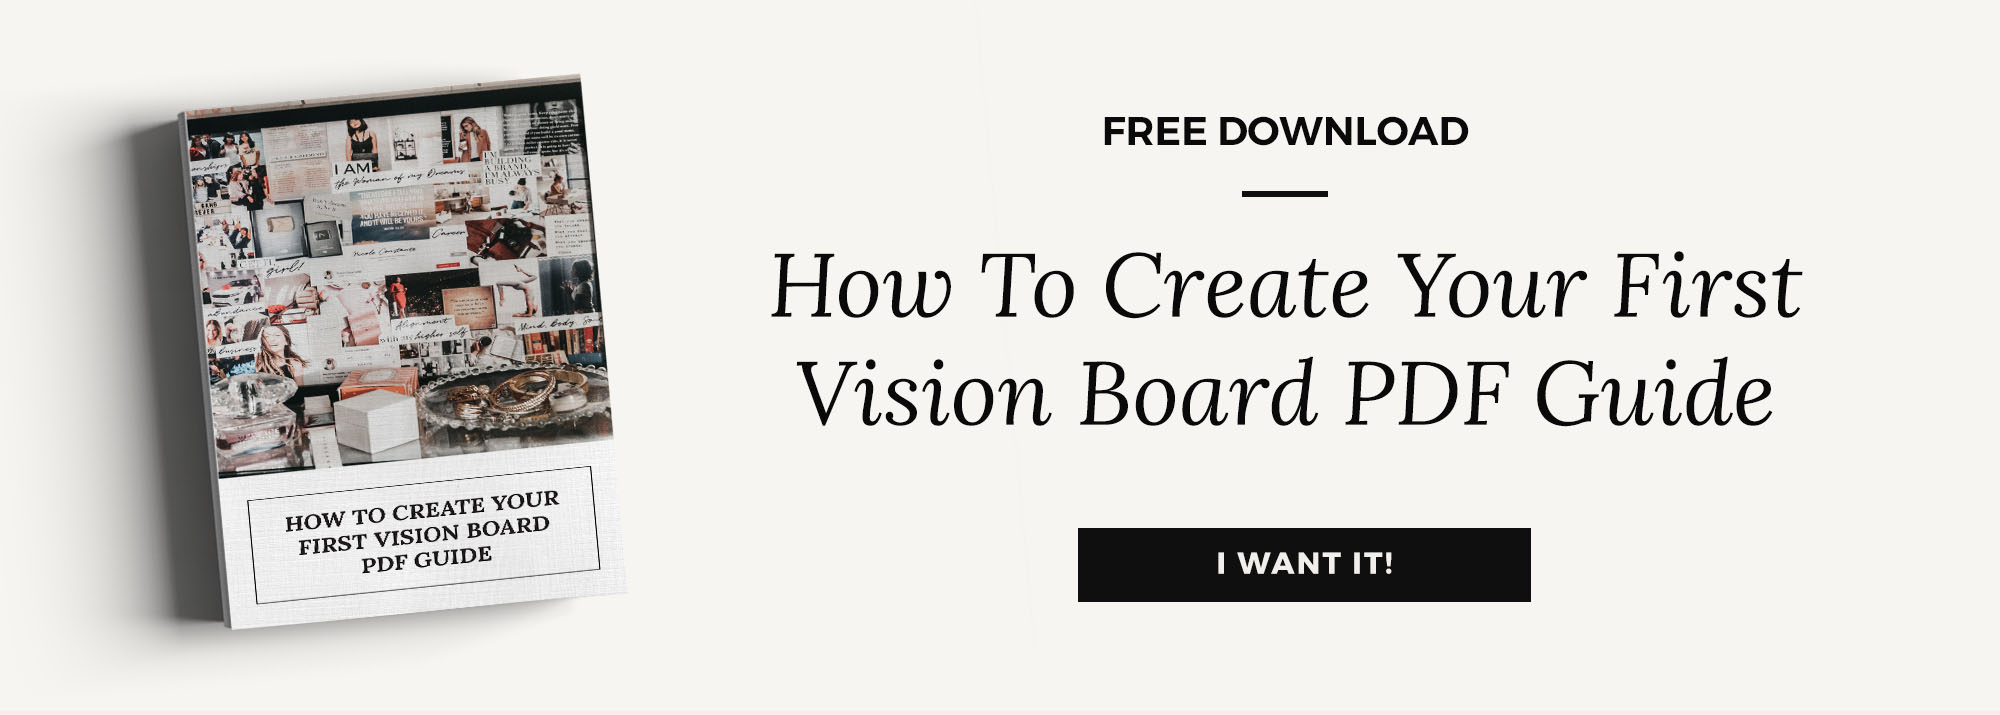 how to create your first vision board free guide.jpg